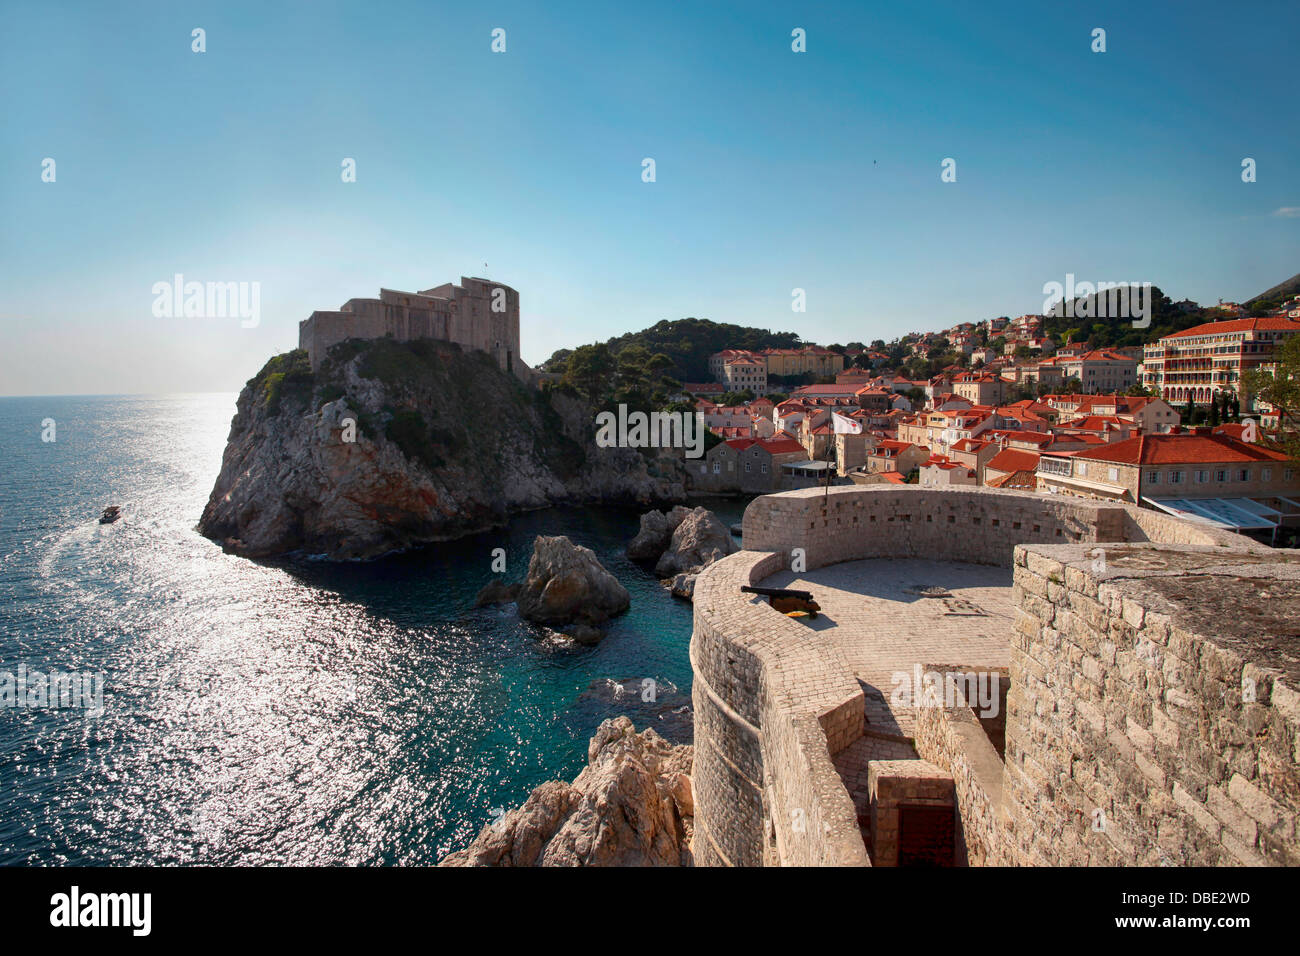 Old town of Dubrovnik. Adriatic Sea. Croatia. Europe. - Stock Image